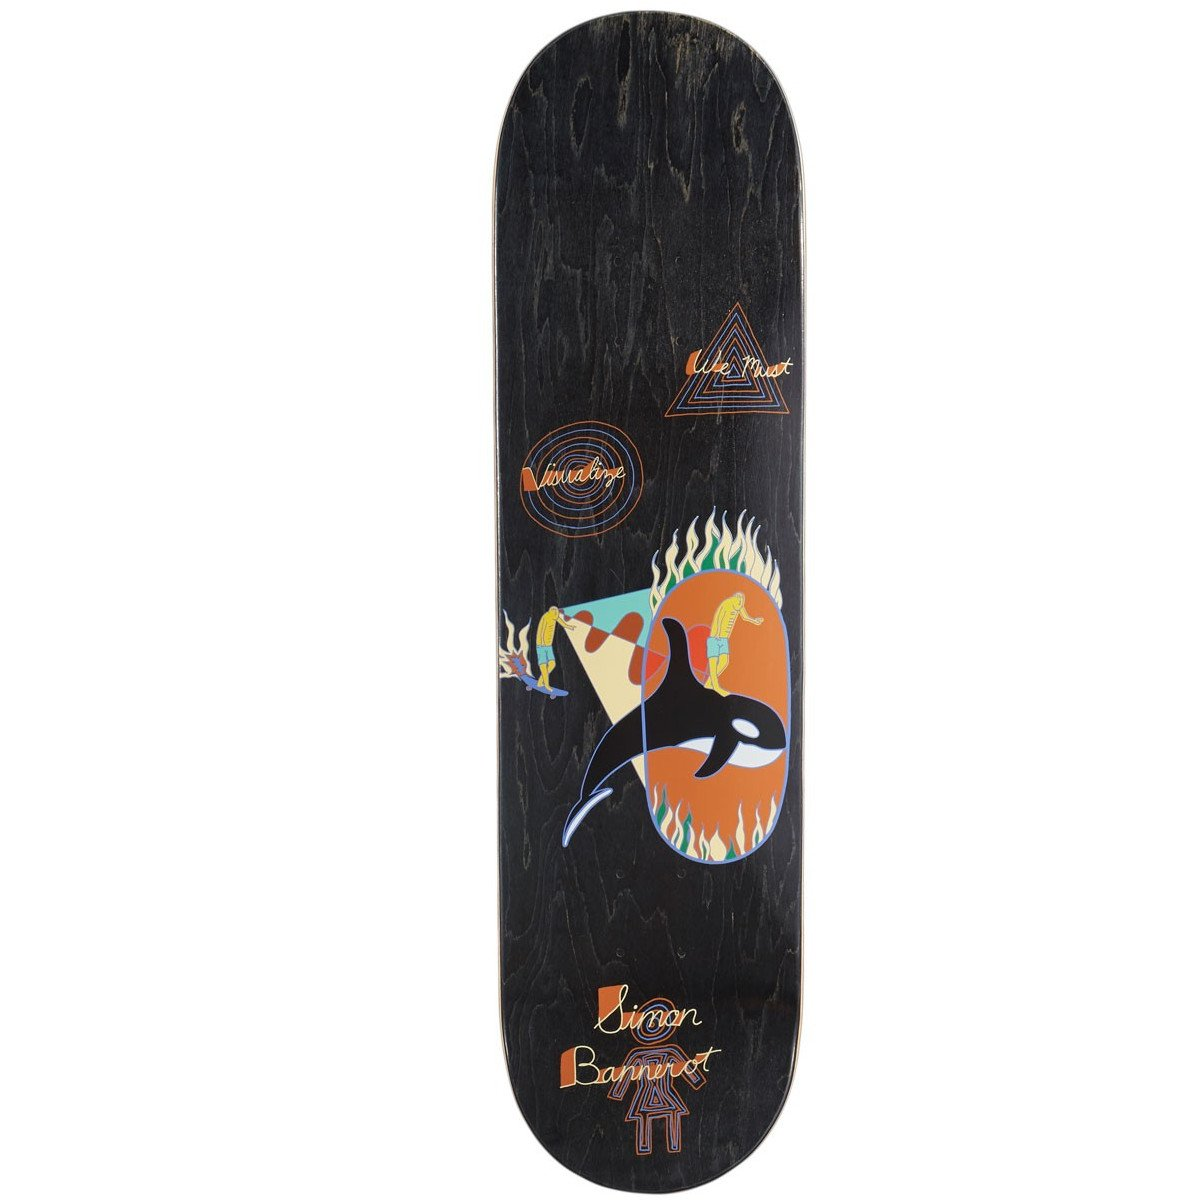 GIRL ONE OFFS SIMON BANNEROT DECK 8.5